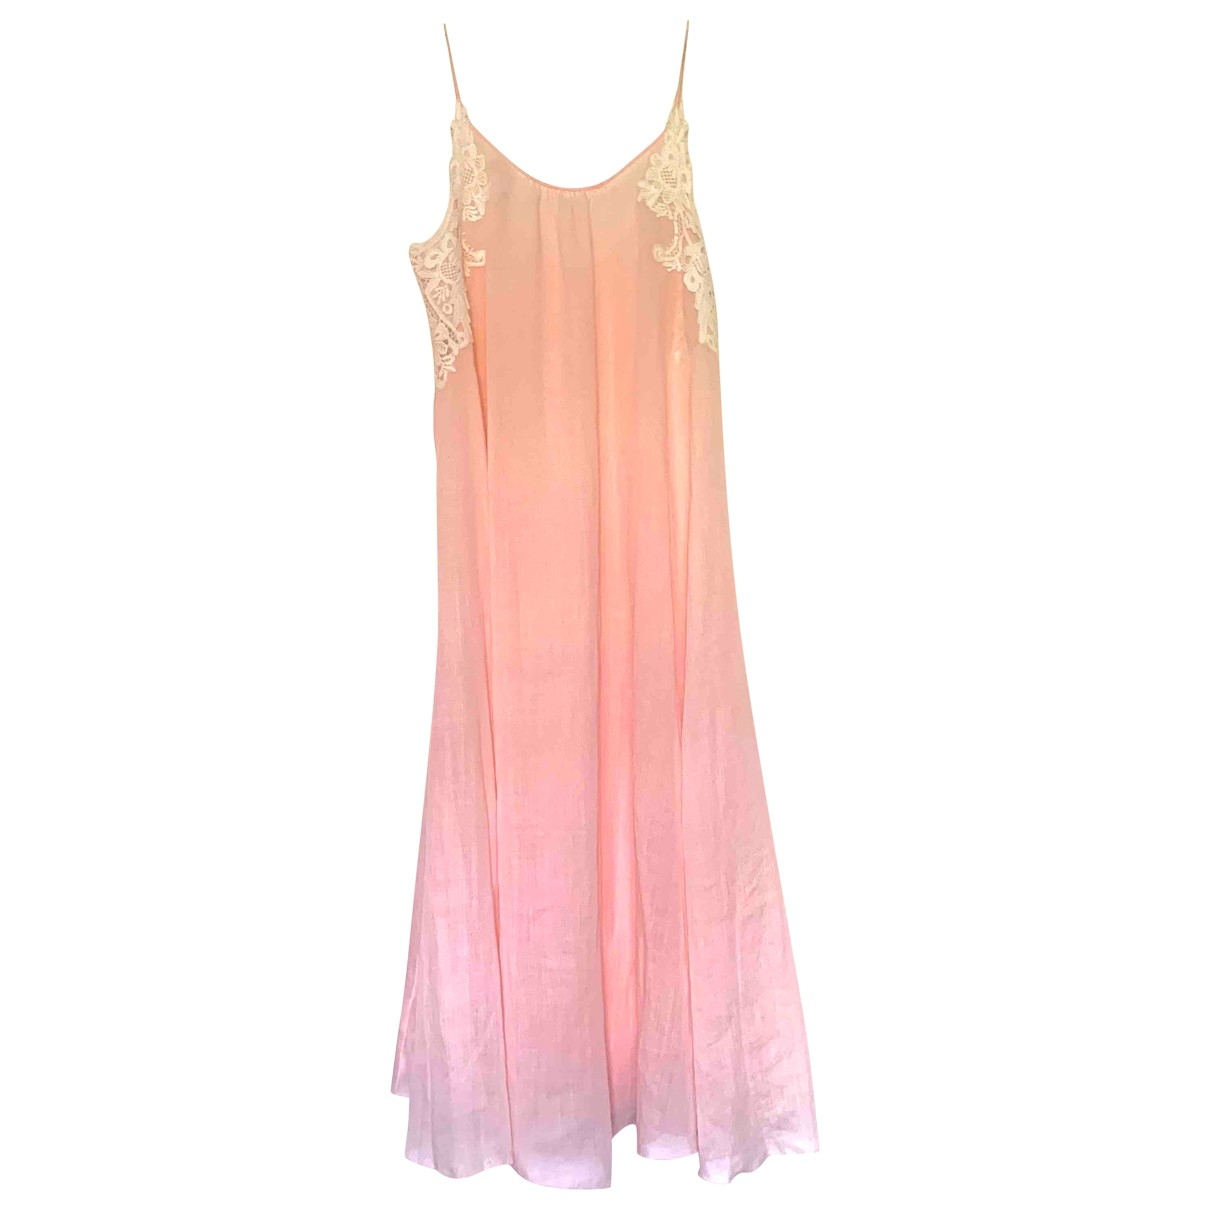 Non Signé / Unsigned Hippie Chic Pink Cotton dress for Women One Size International